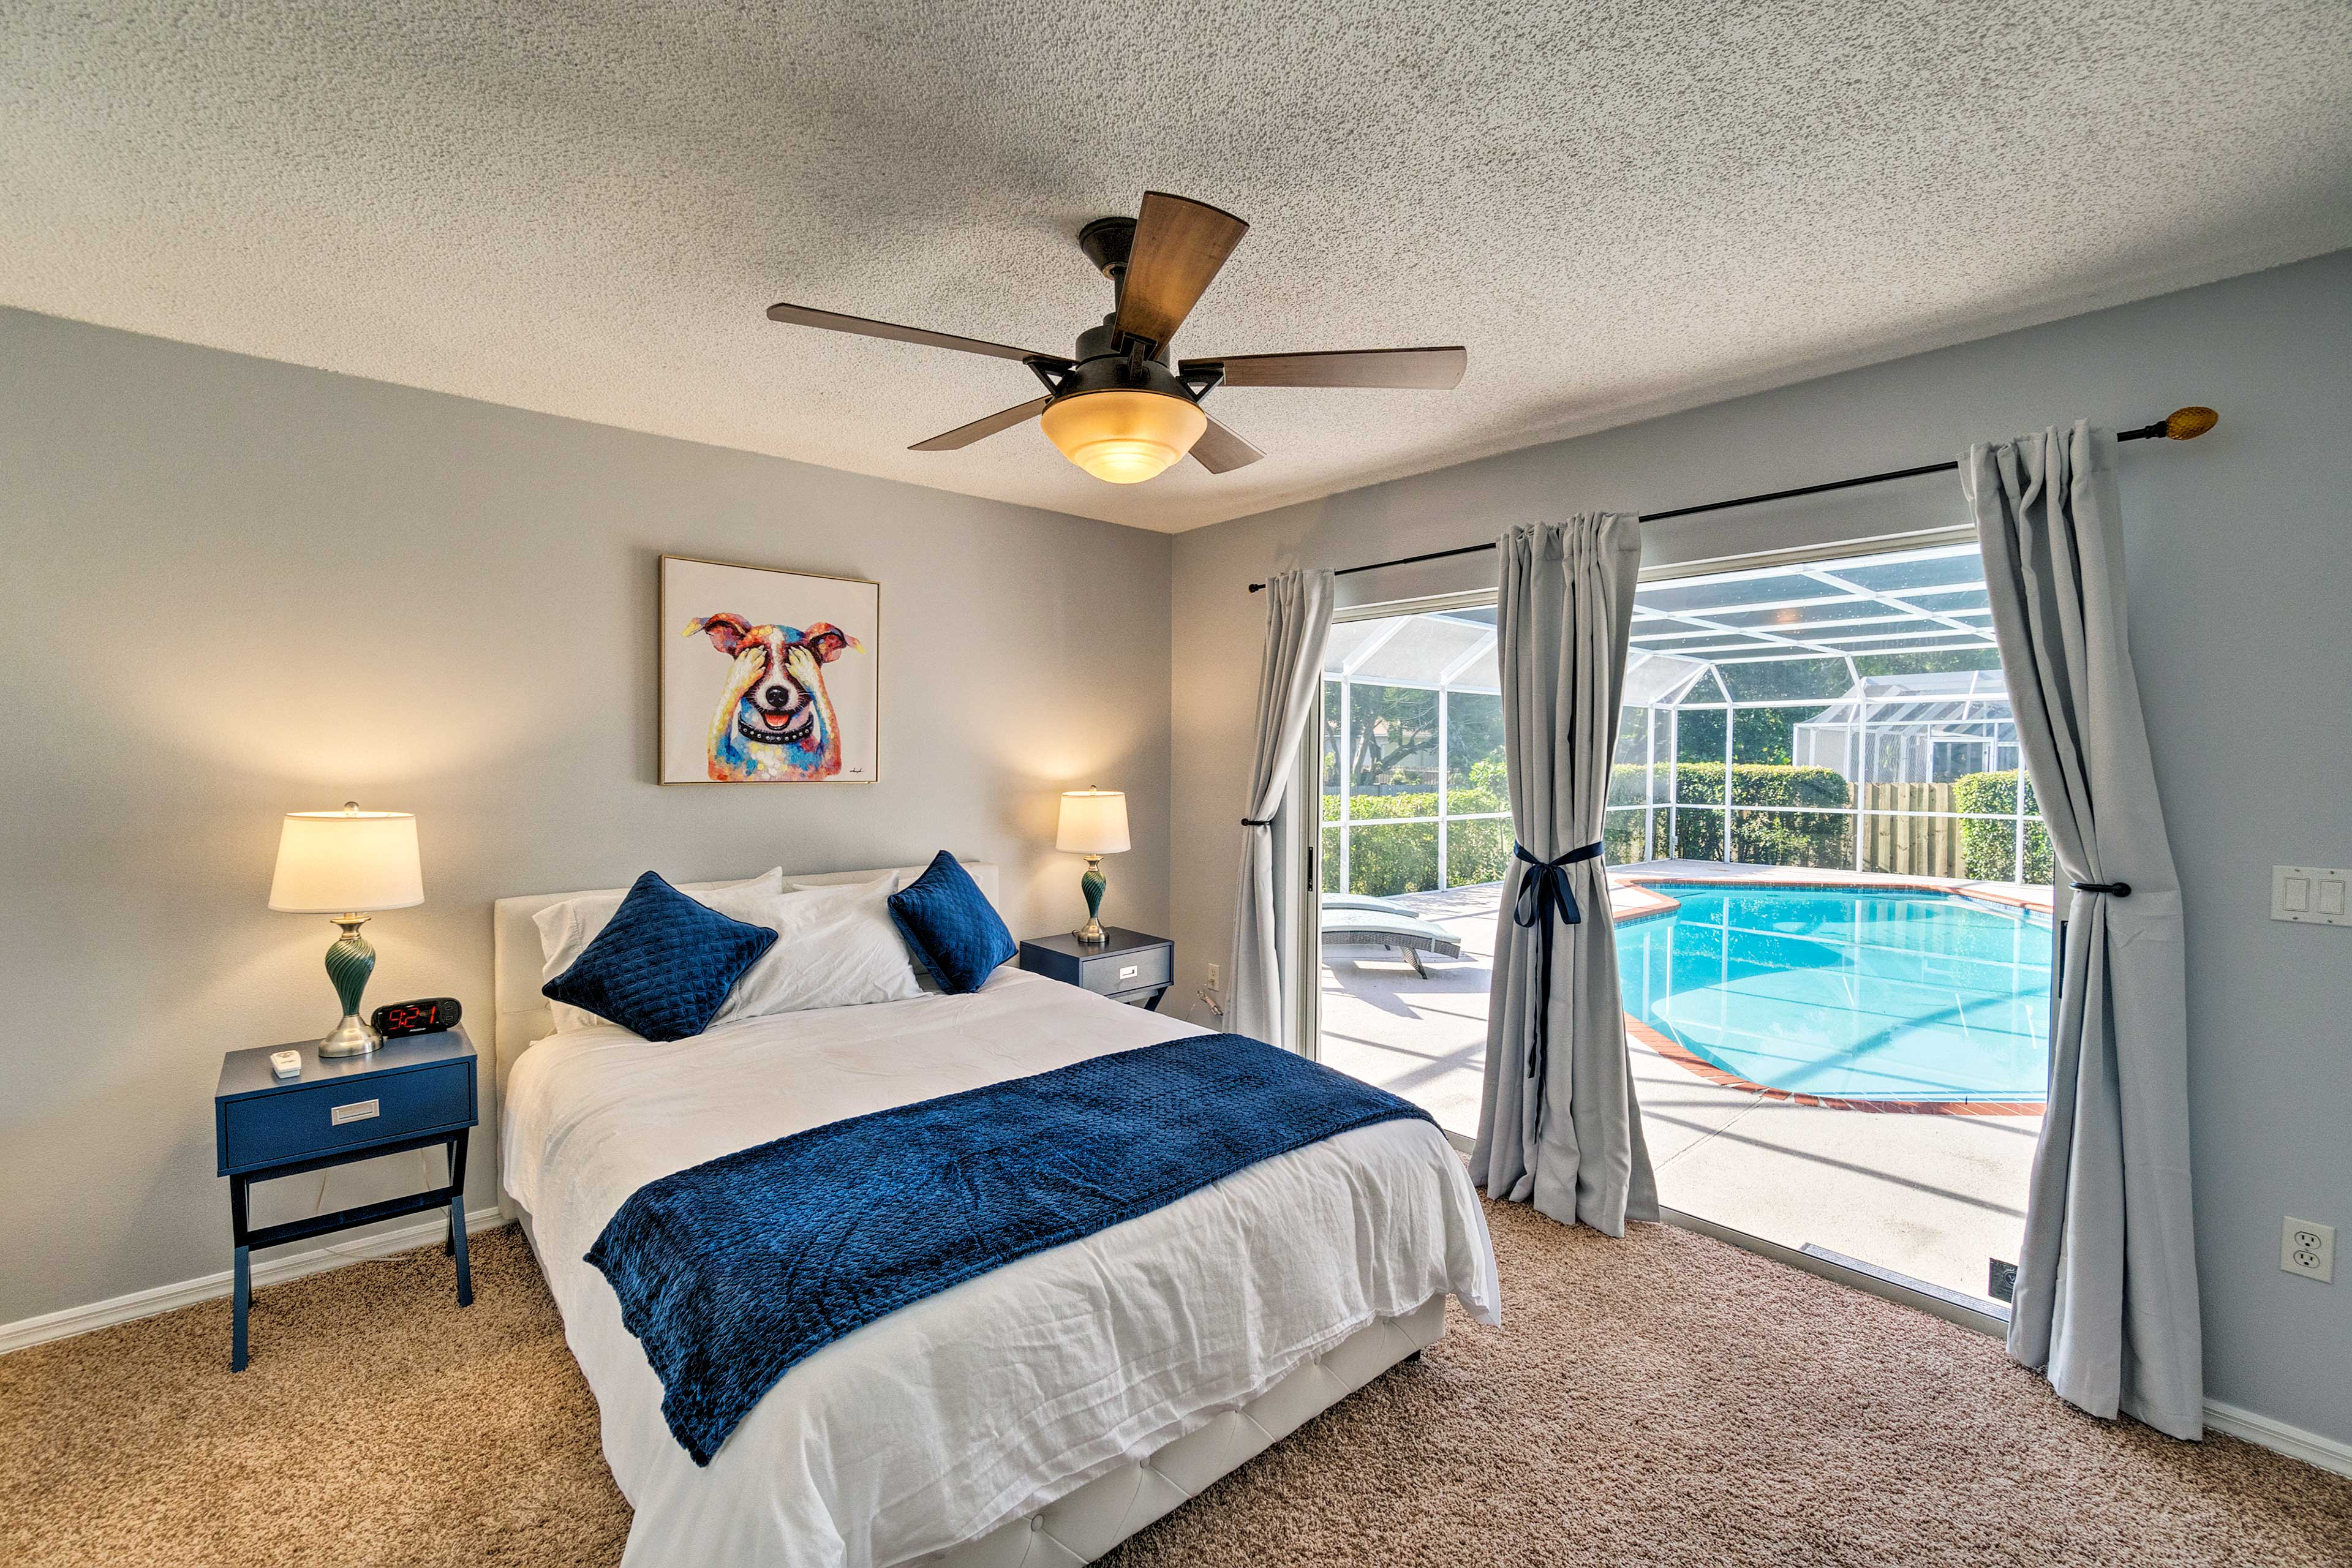 You'll love waking up in bedroom 2 and walking out to the pool!